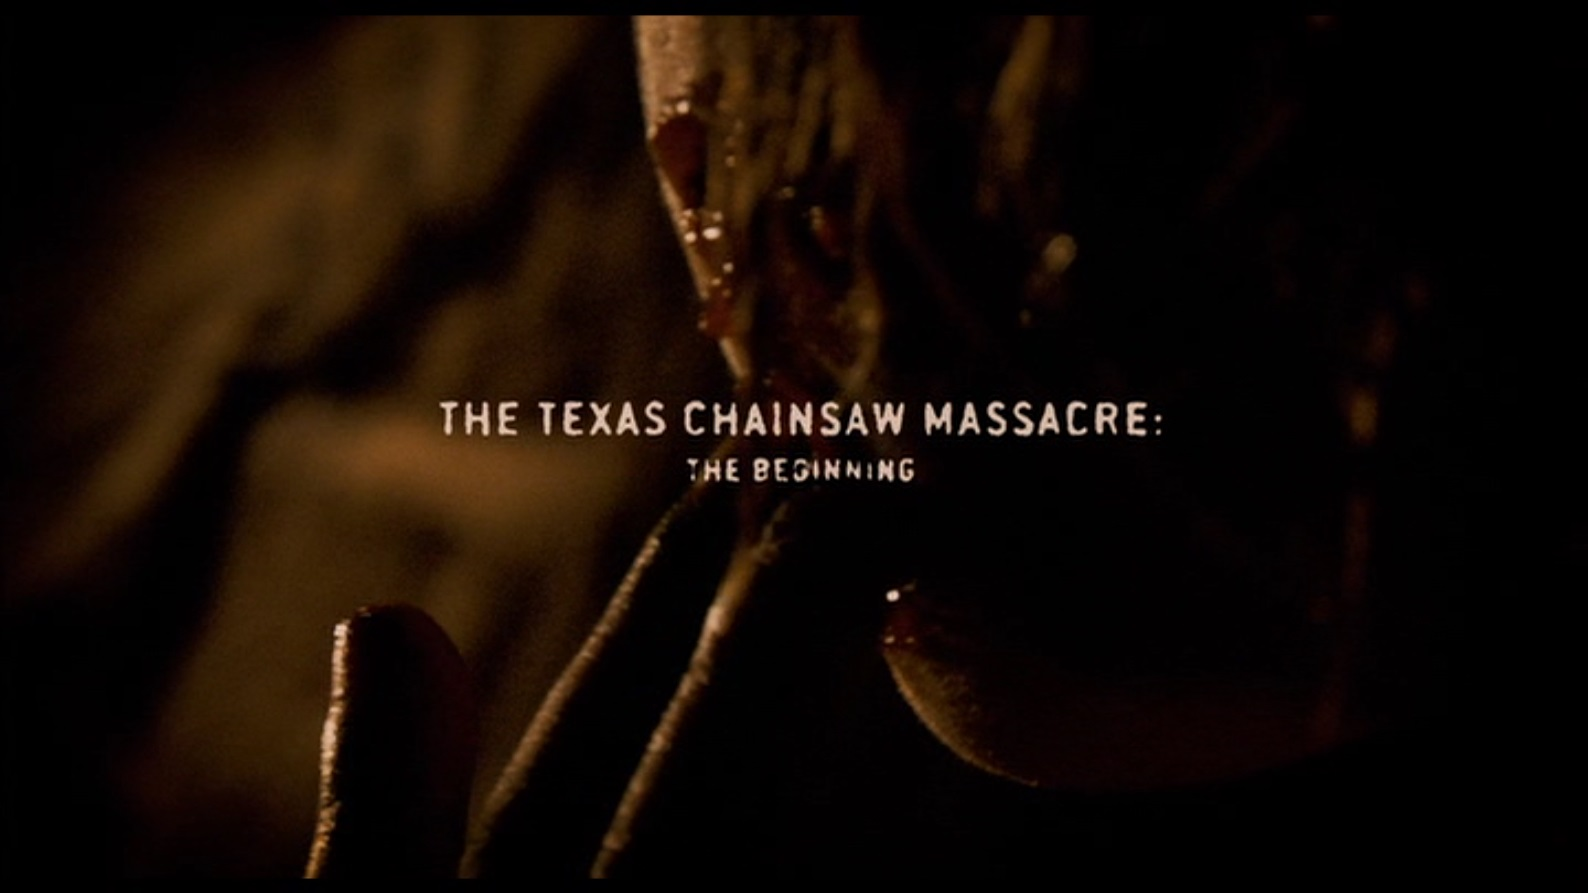 the texas chainsaw massacre 2 1986 ending relationship